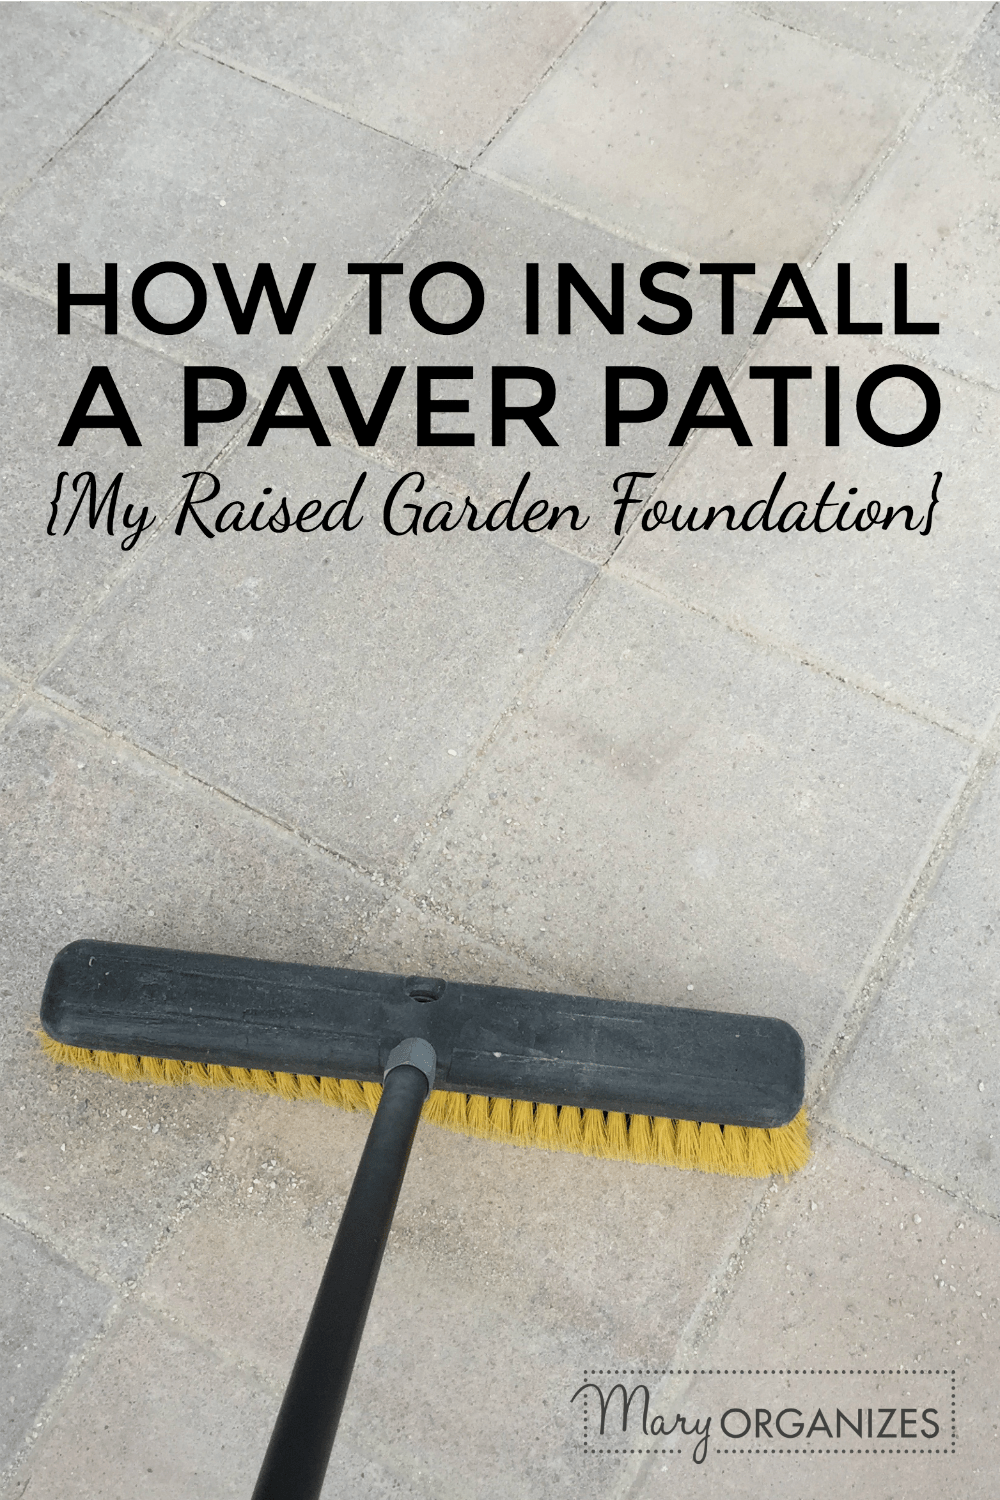 How To Install Paver Patio   My Raised Garden Foundation  V